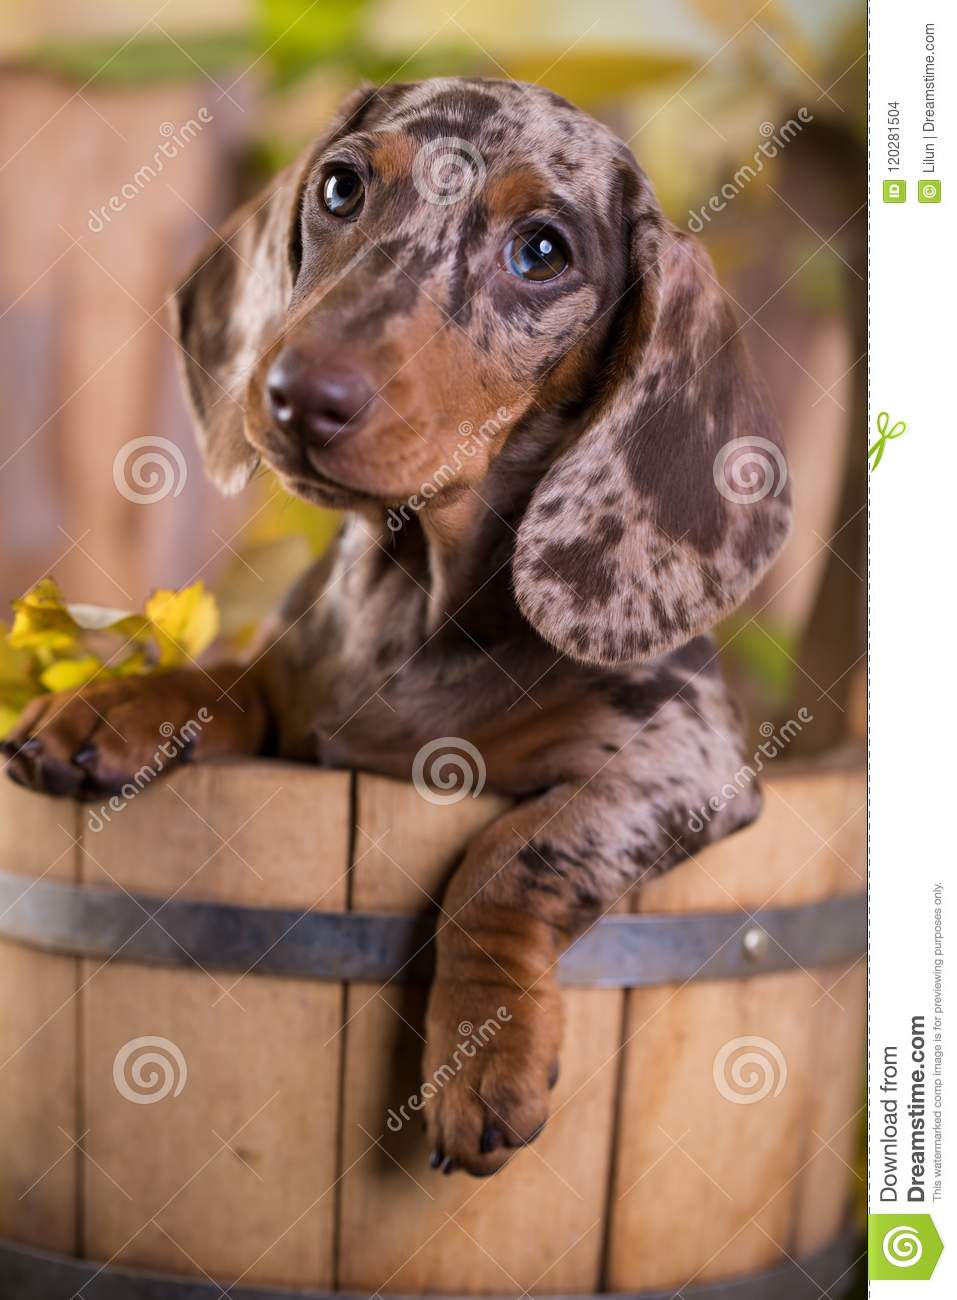 Download Dachshund Dog Marble Colors Stock Photo - Image of domestic, little: 120281504